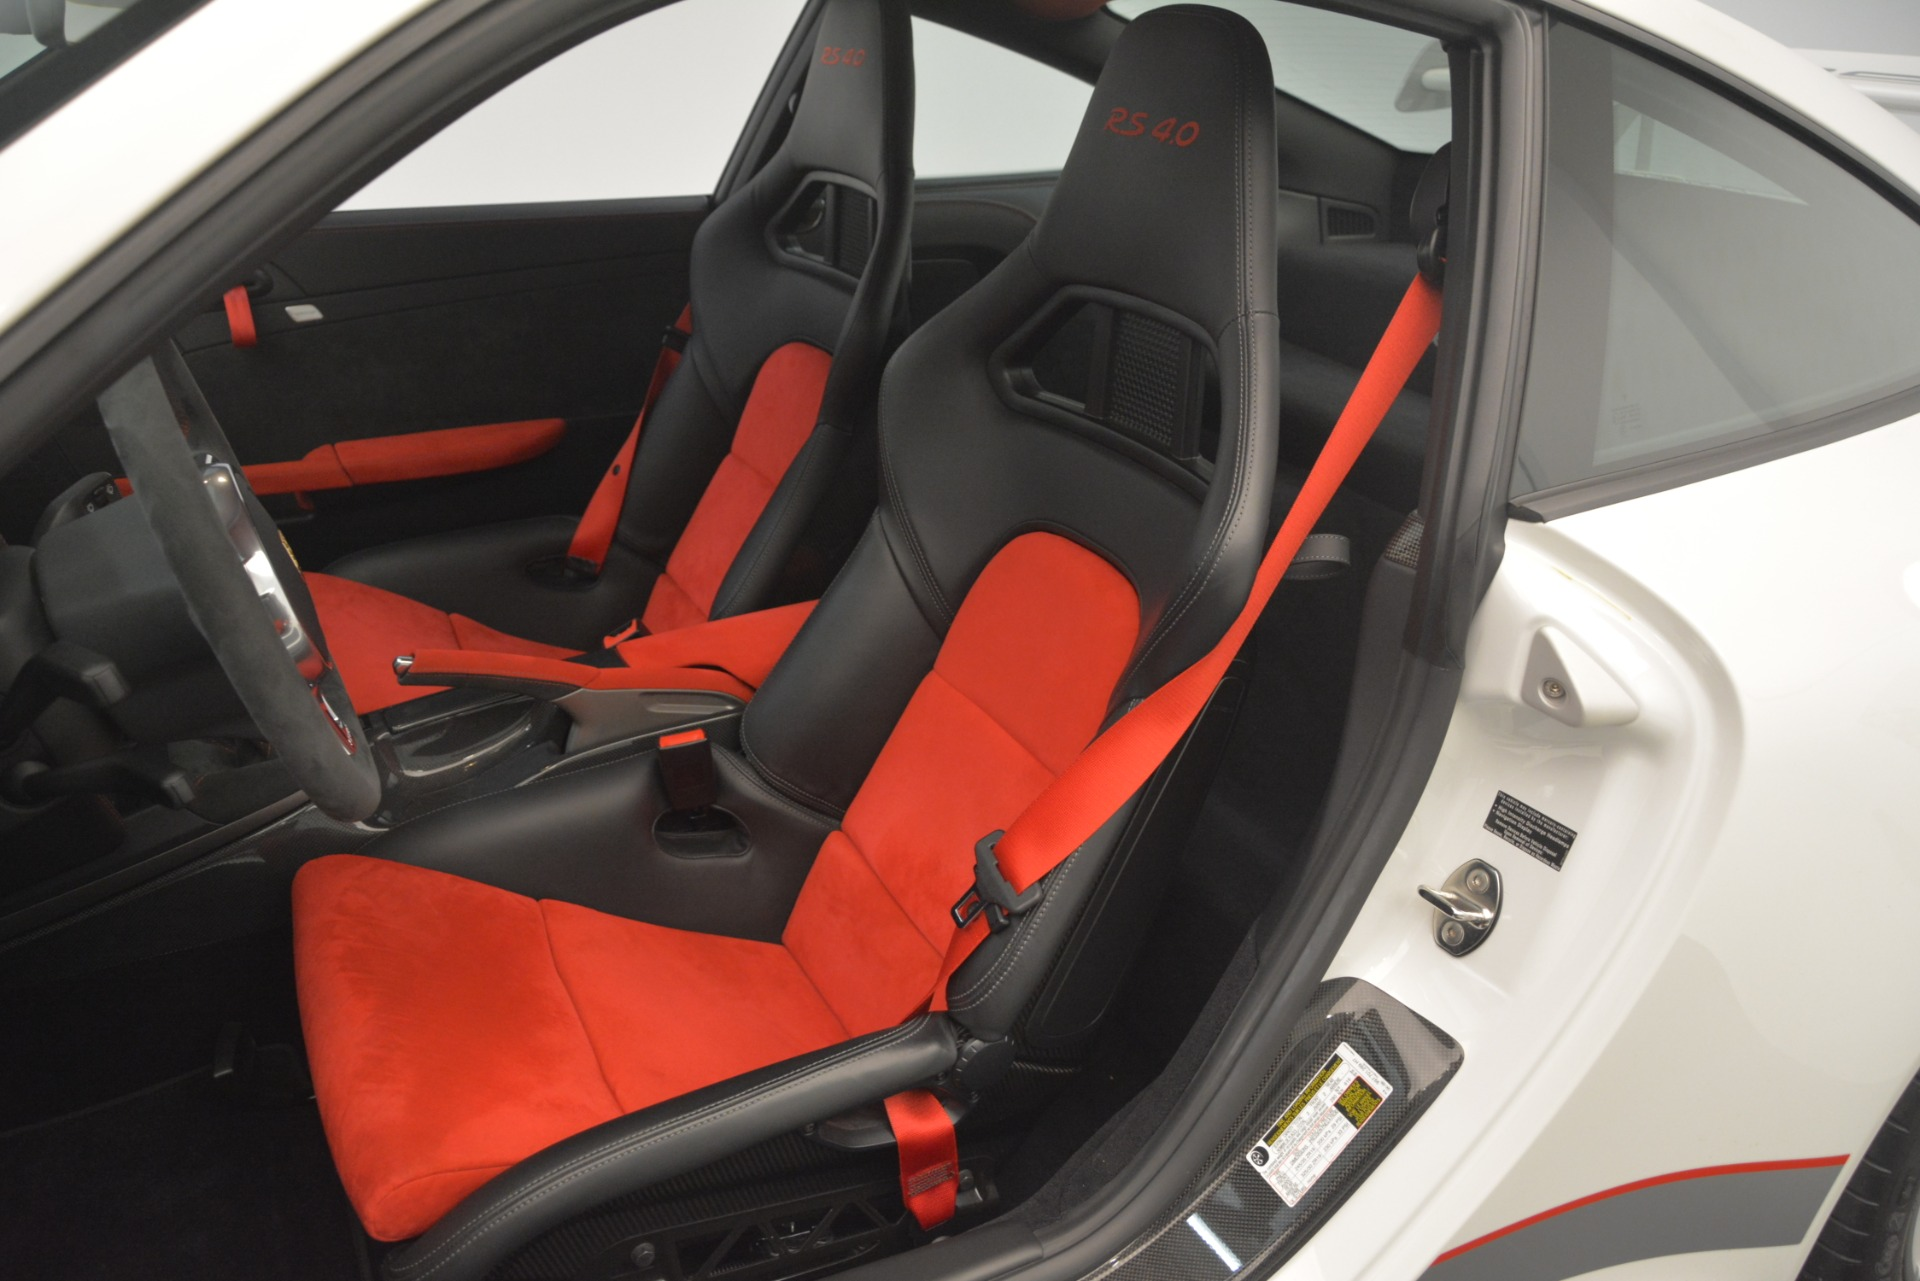 Used 2011 Porsche 911 GT3 RS 4.0 For Sale In Westport, CT 3188_p15